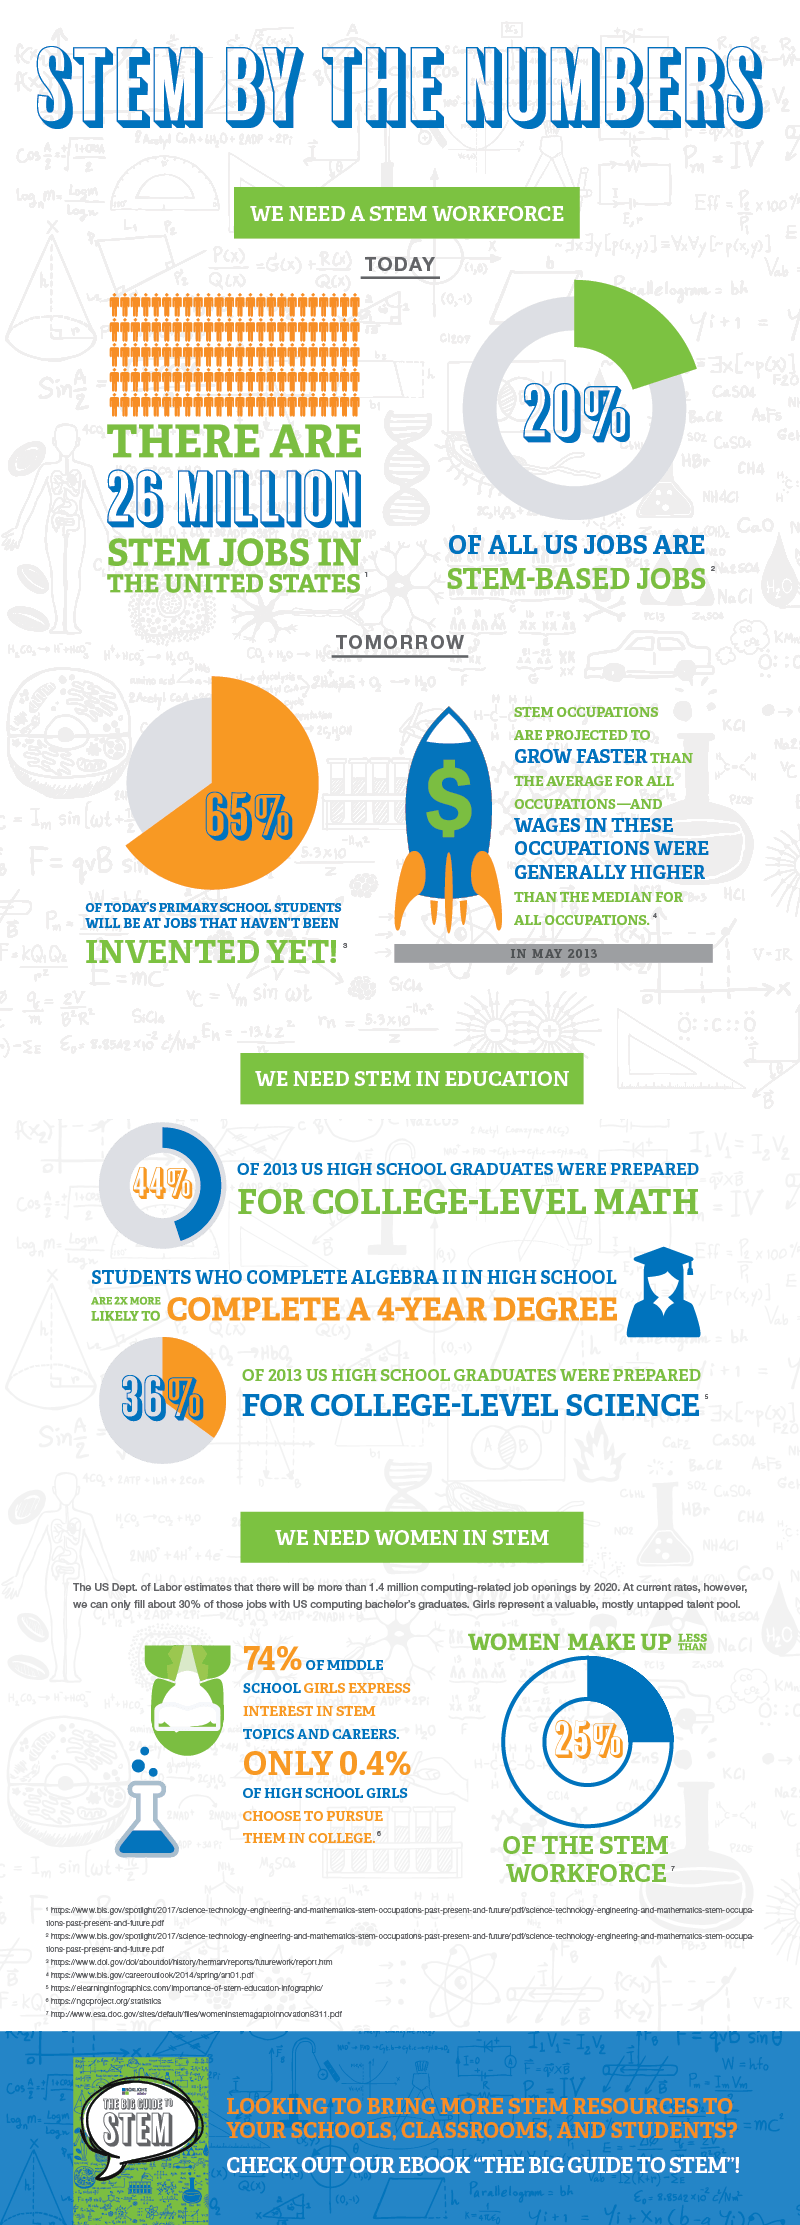 STEM by the Numbers Infographic